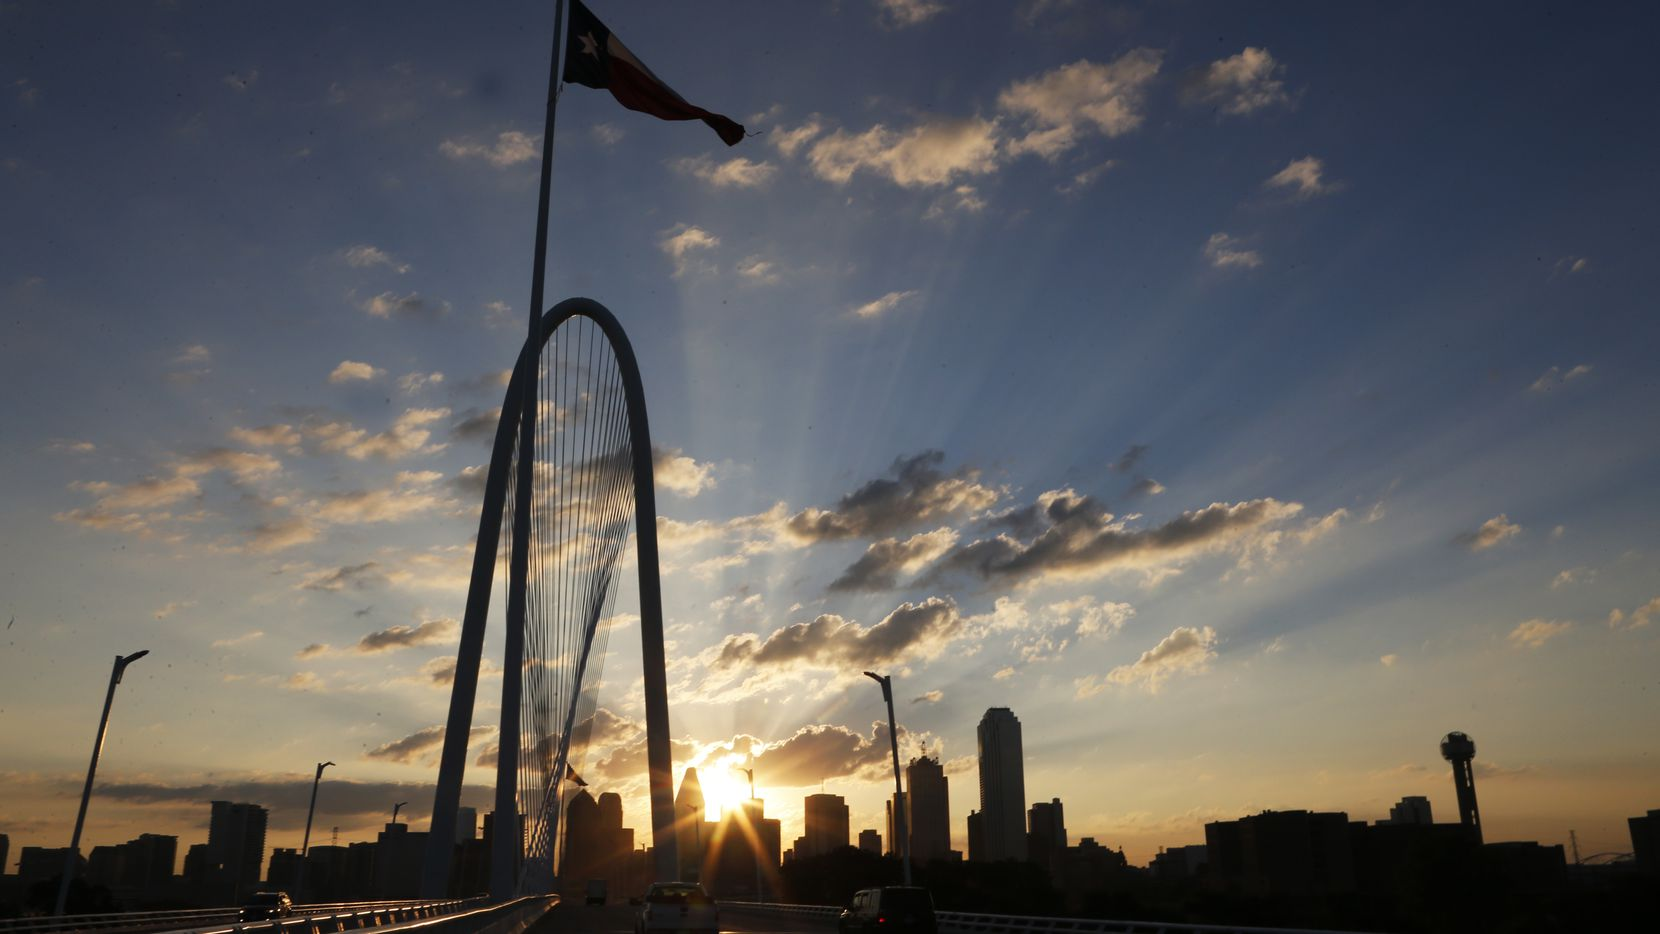 The sun emerges over the Dallas skyline with the Margaret Hunt Hill Bridge  in the foreground on Tuesday, August 12, 2014 in Dallas, Texas. (David Woo/The Dallas Morning News)